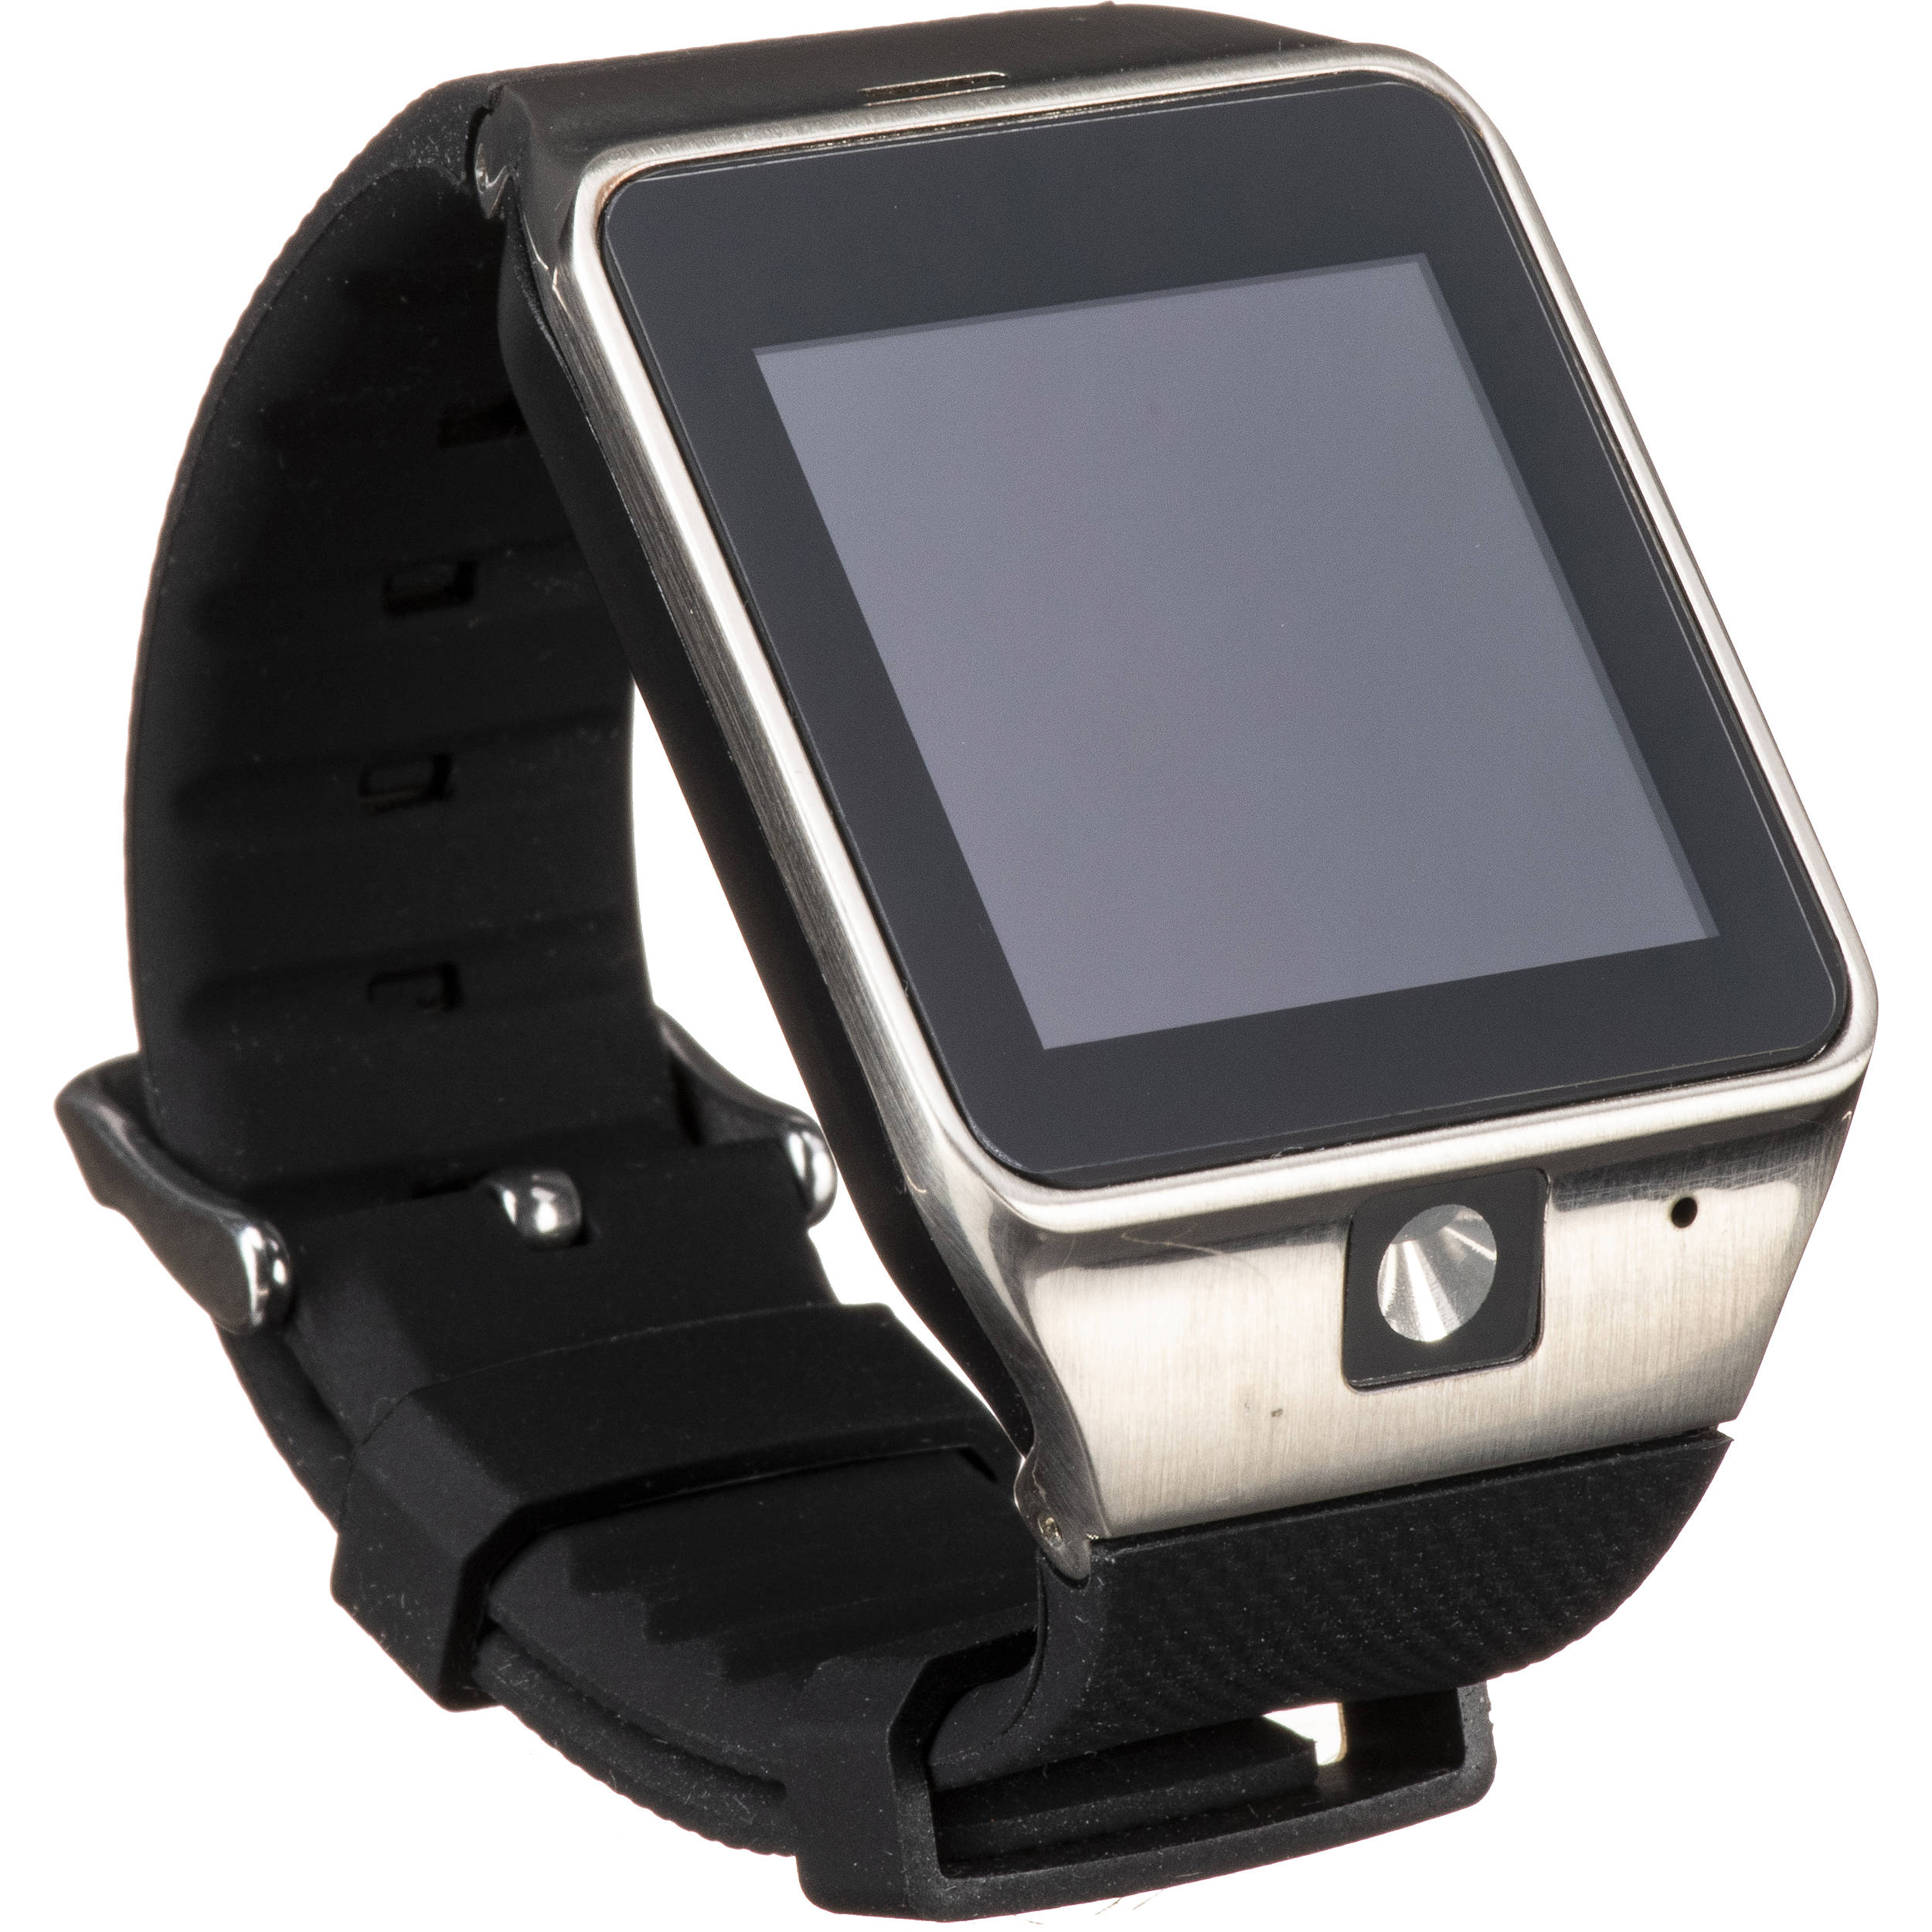 Smart Watch With Camera - Questions